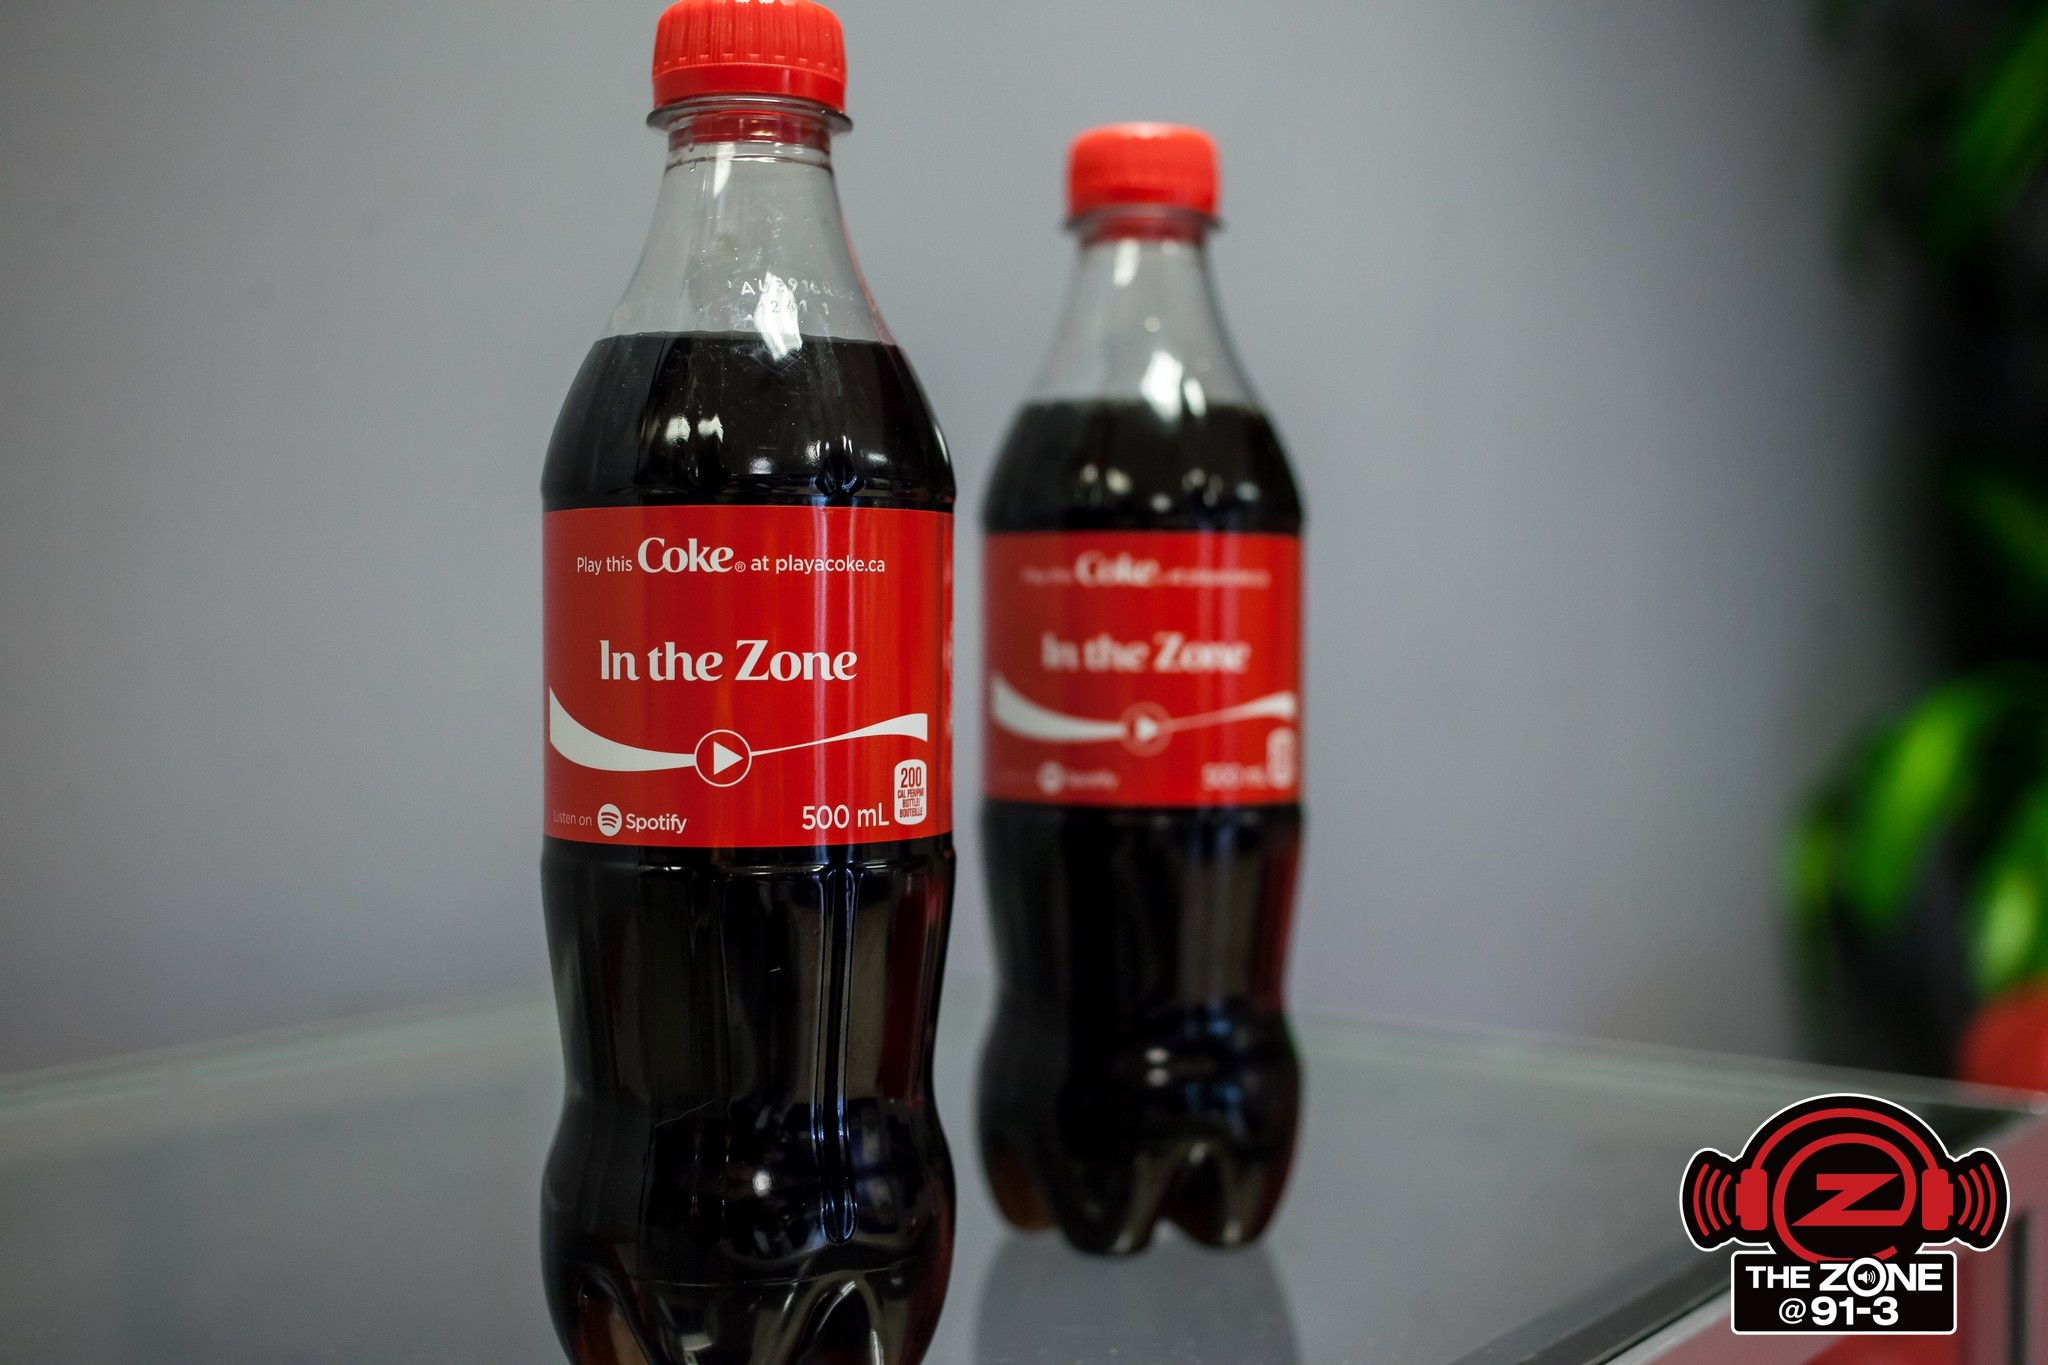 Share a Coke in The Zone